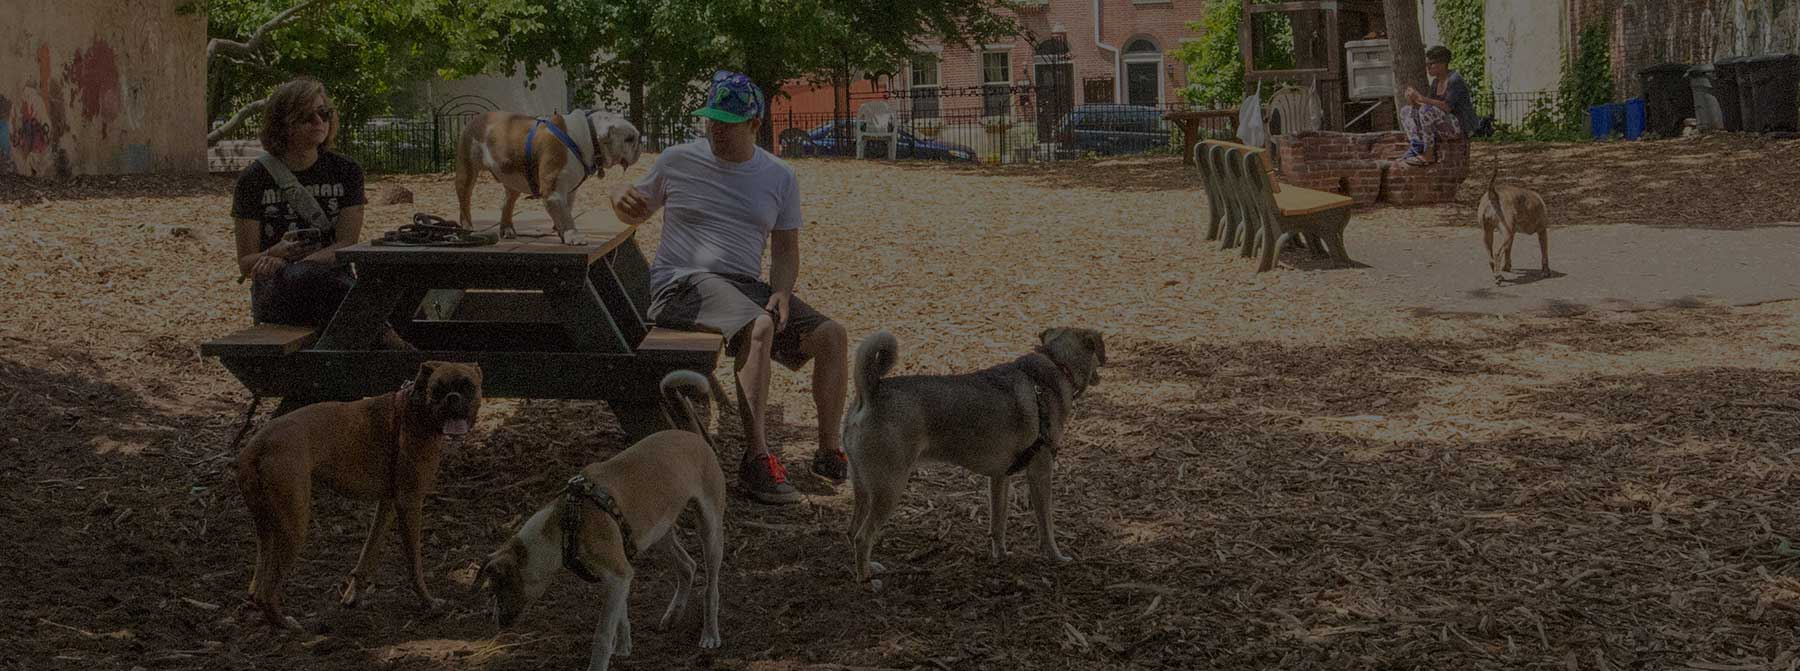 Dog Friendly Philly:  Northern Liberties & Fishtown